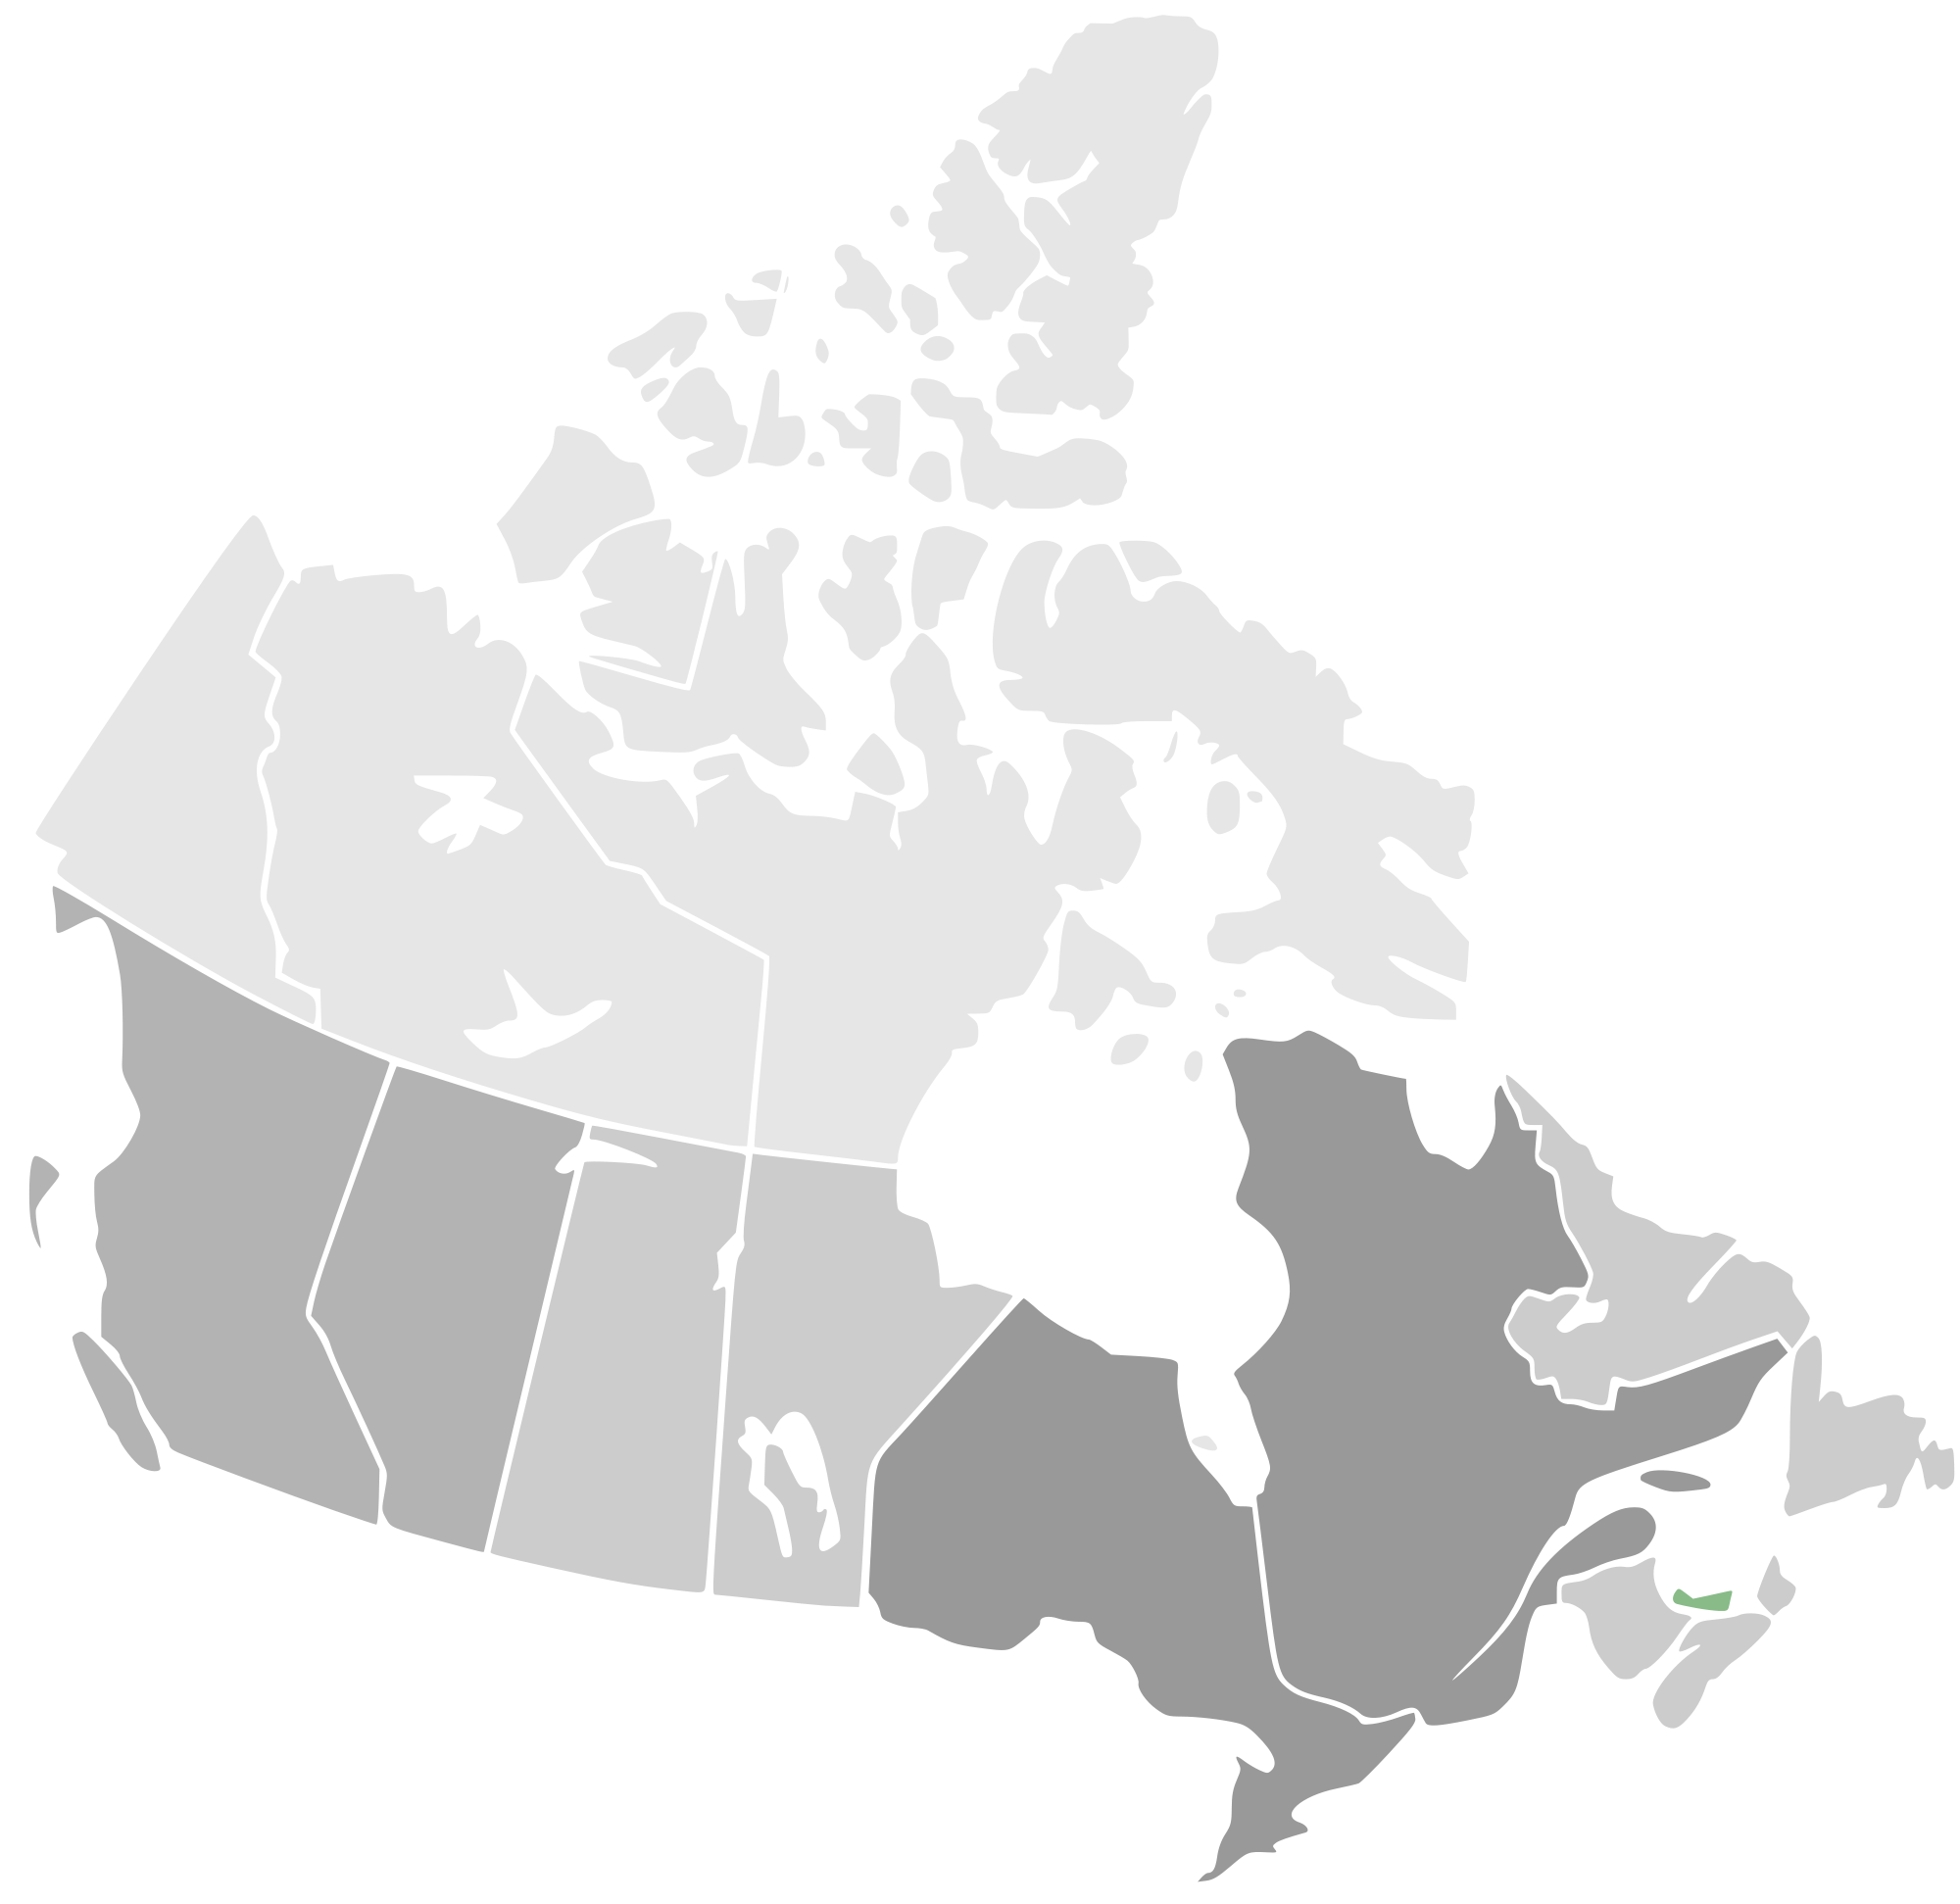 Free Map Of Canada.Canada Map Vector At Getdrawings Com Free For Personal Use Canada